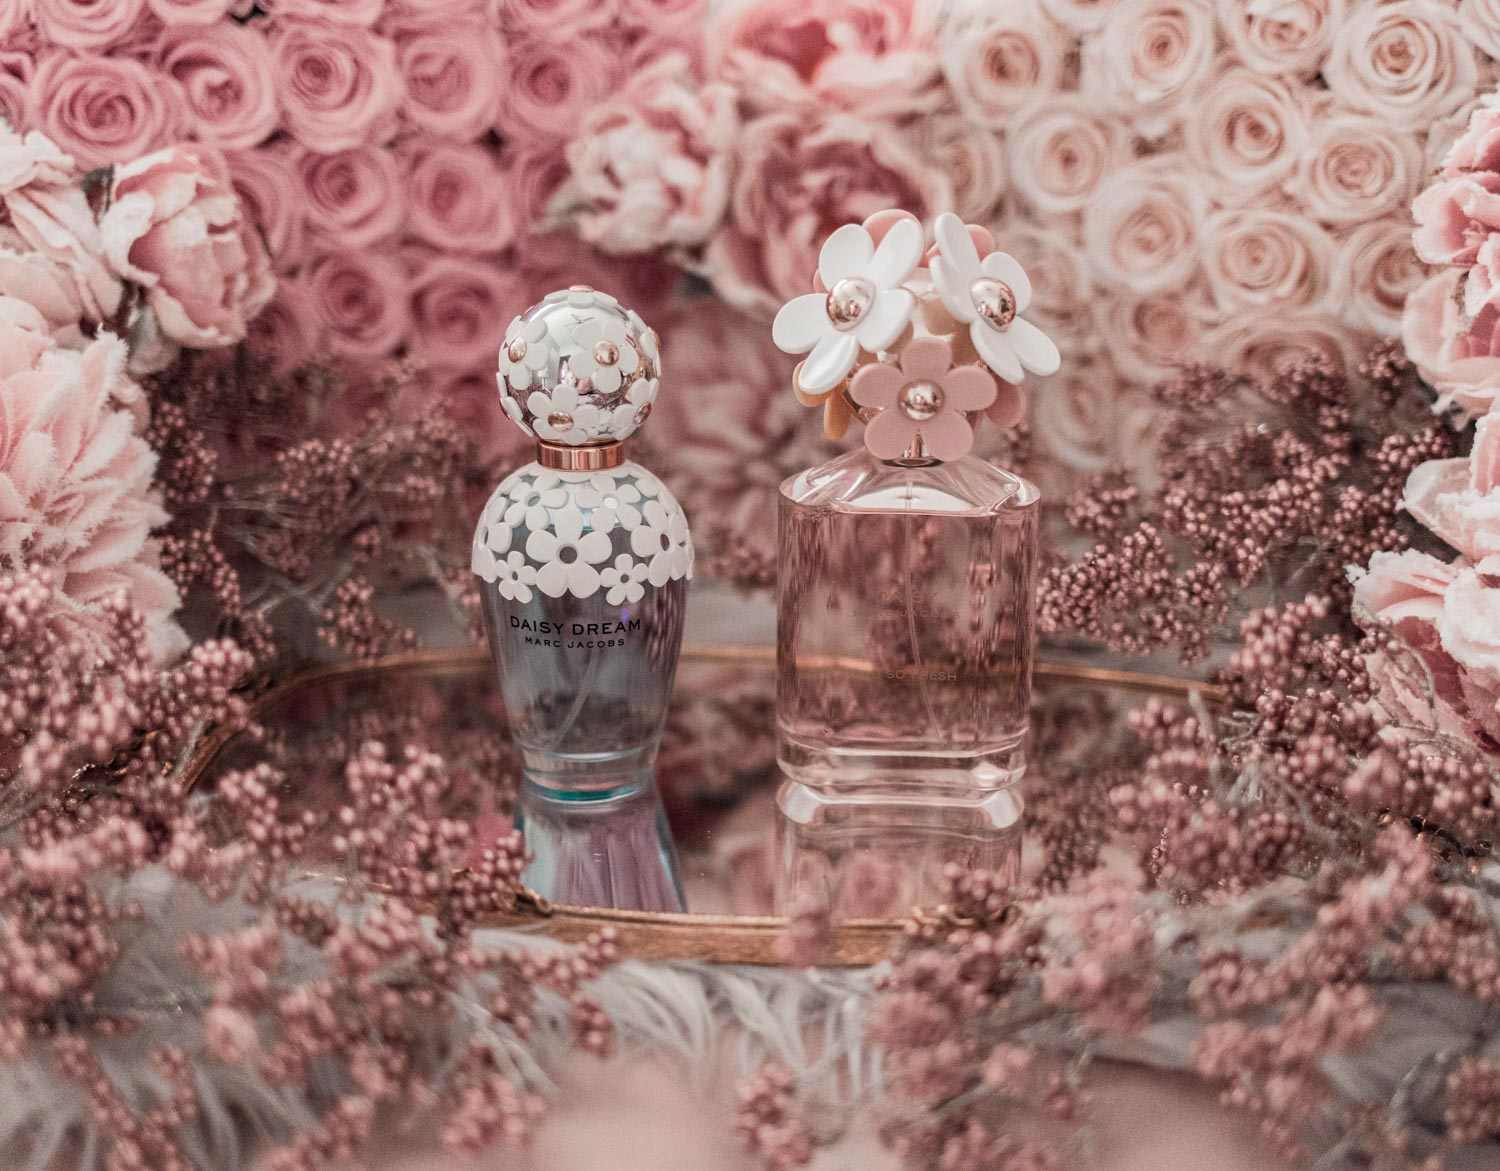 Feminine fashion blogger Elizabeth Hugen of Lizzie in Lace shares the best feminine perfumes and her girly fragrance collection including Marc Jacobs Daisy Dream and Daisy eau so Fresh